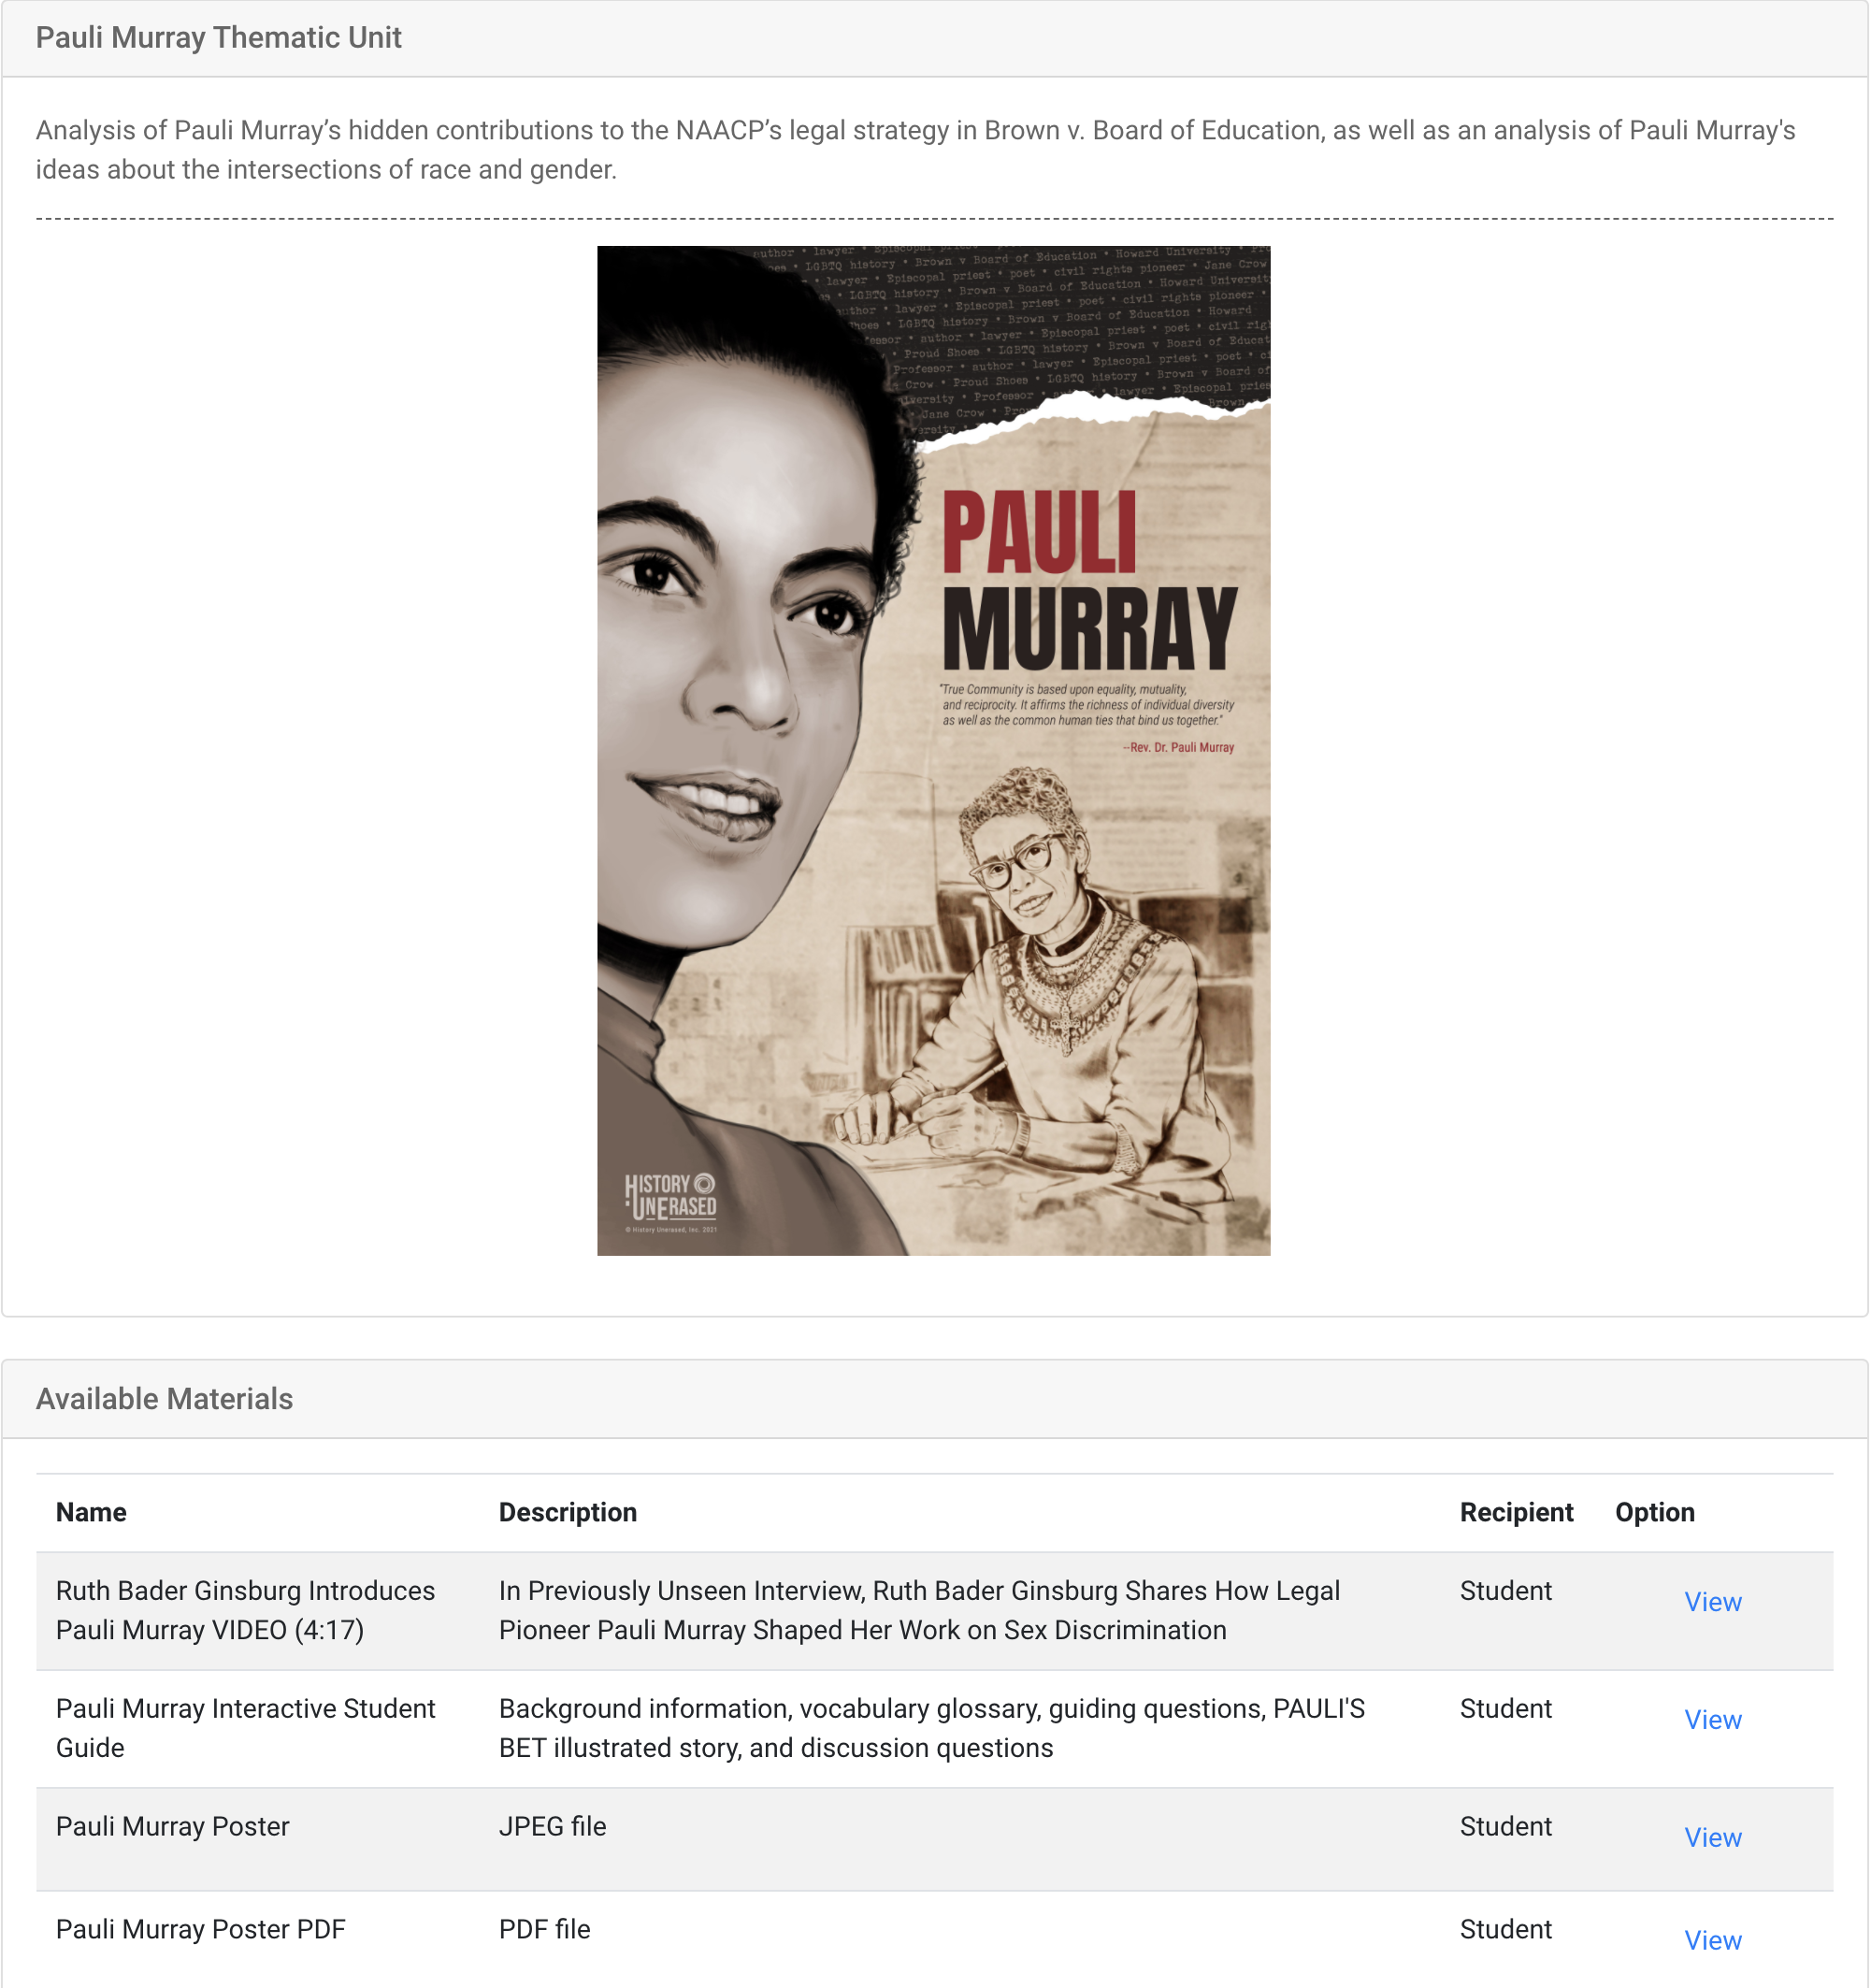 pauli murray thematic unit student view of resource home page